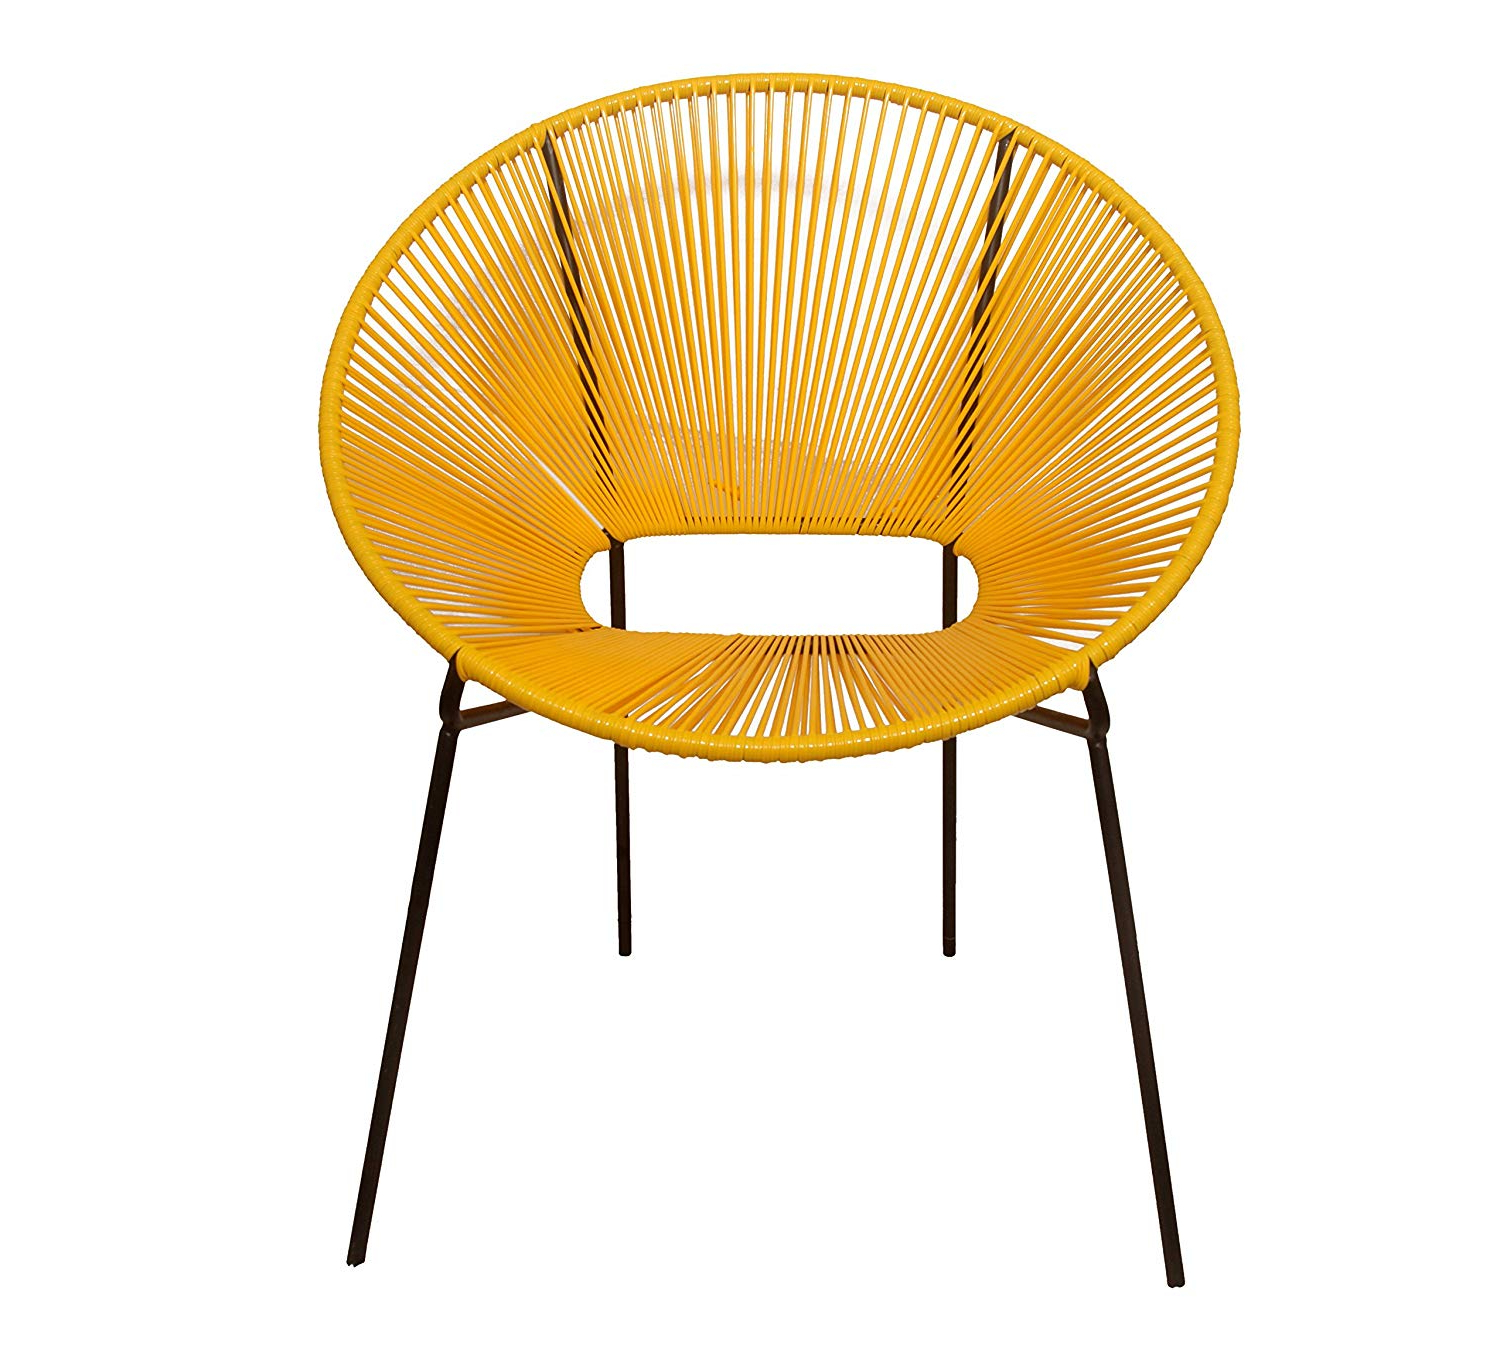 Cheap Yellow Acapulco Chair, Find Yellow Acapulco Chair With Regard To Favorite Handmade Acapulco Woven Indoor Outdoor Lounge Chairs (View 24 of 25)